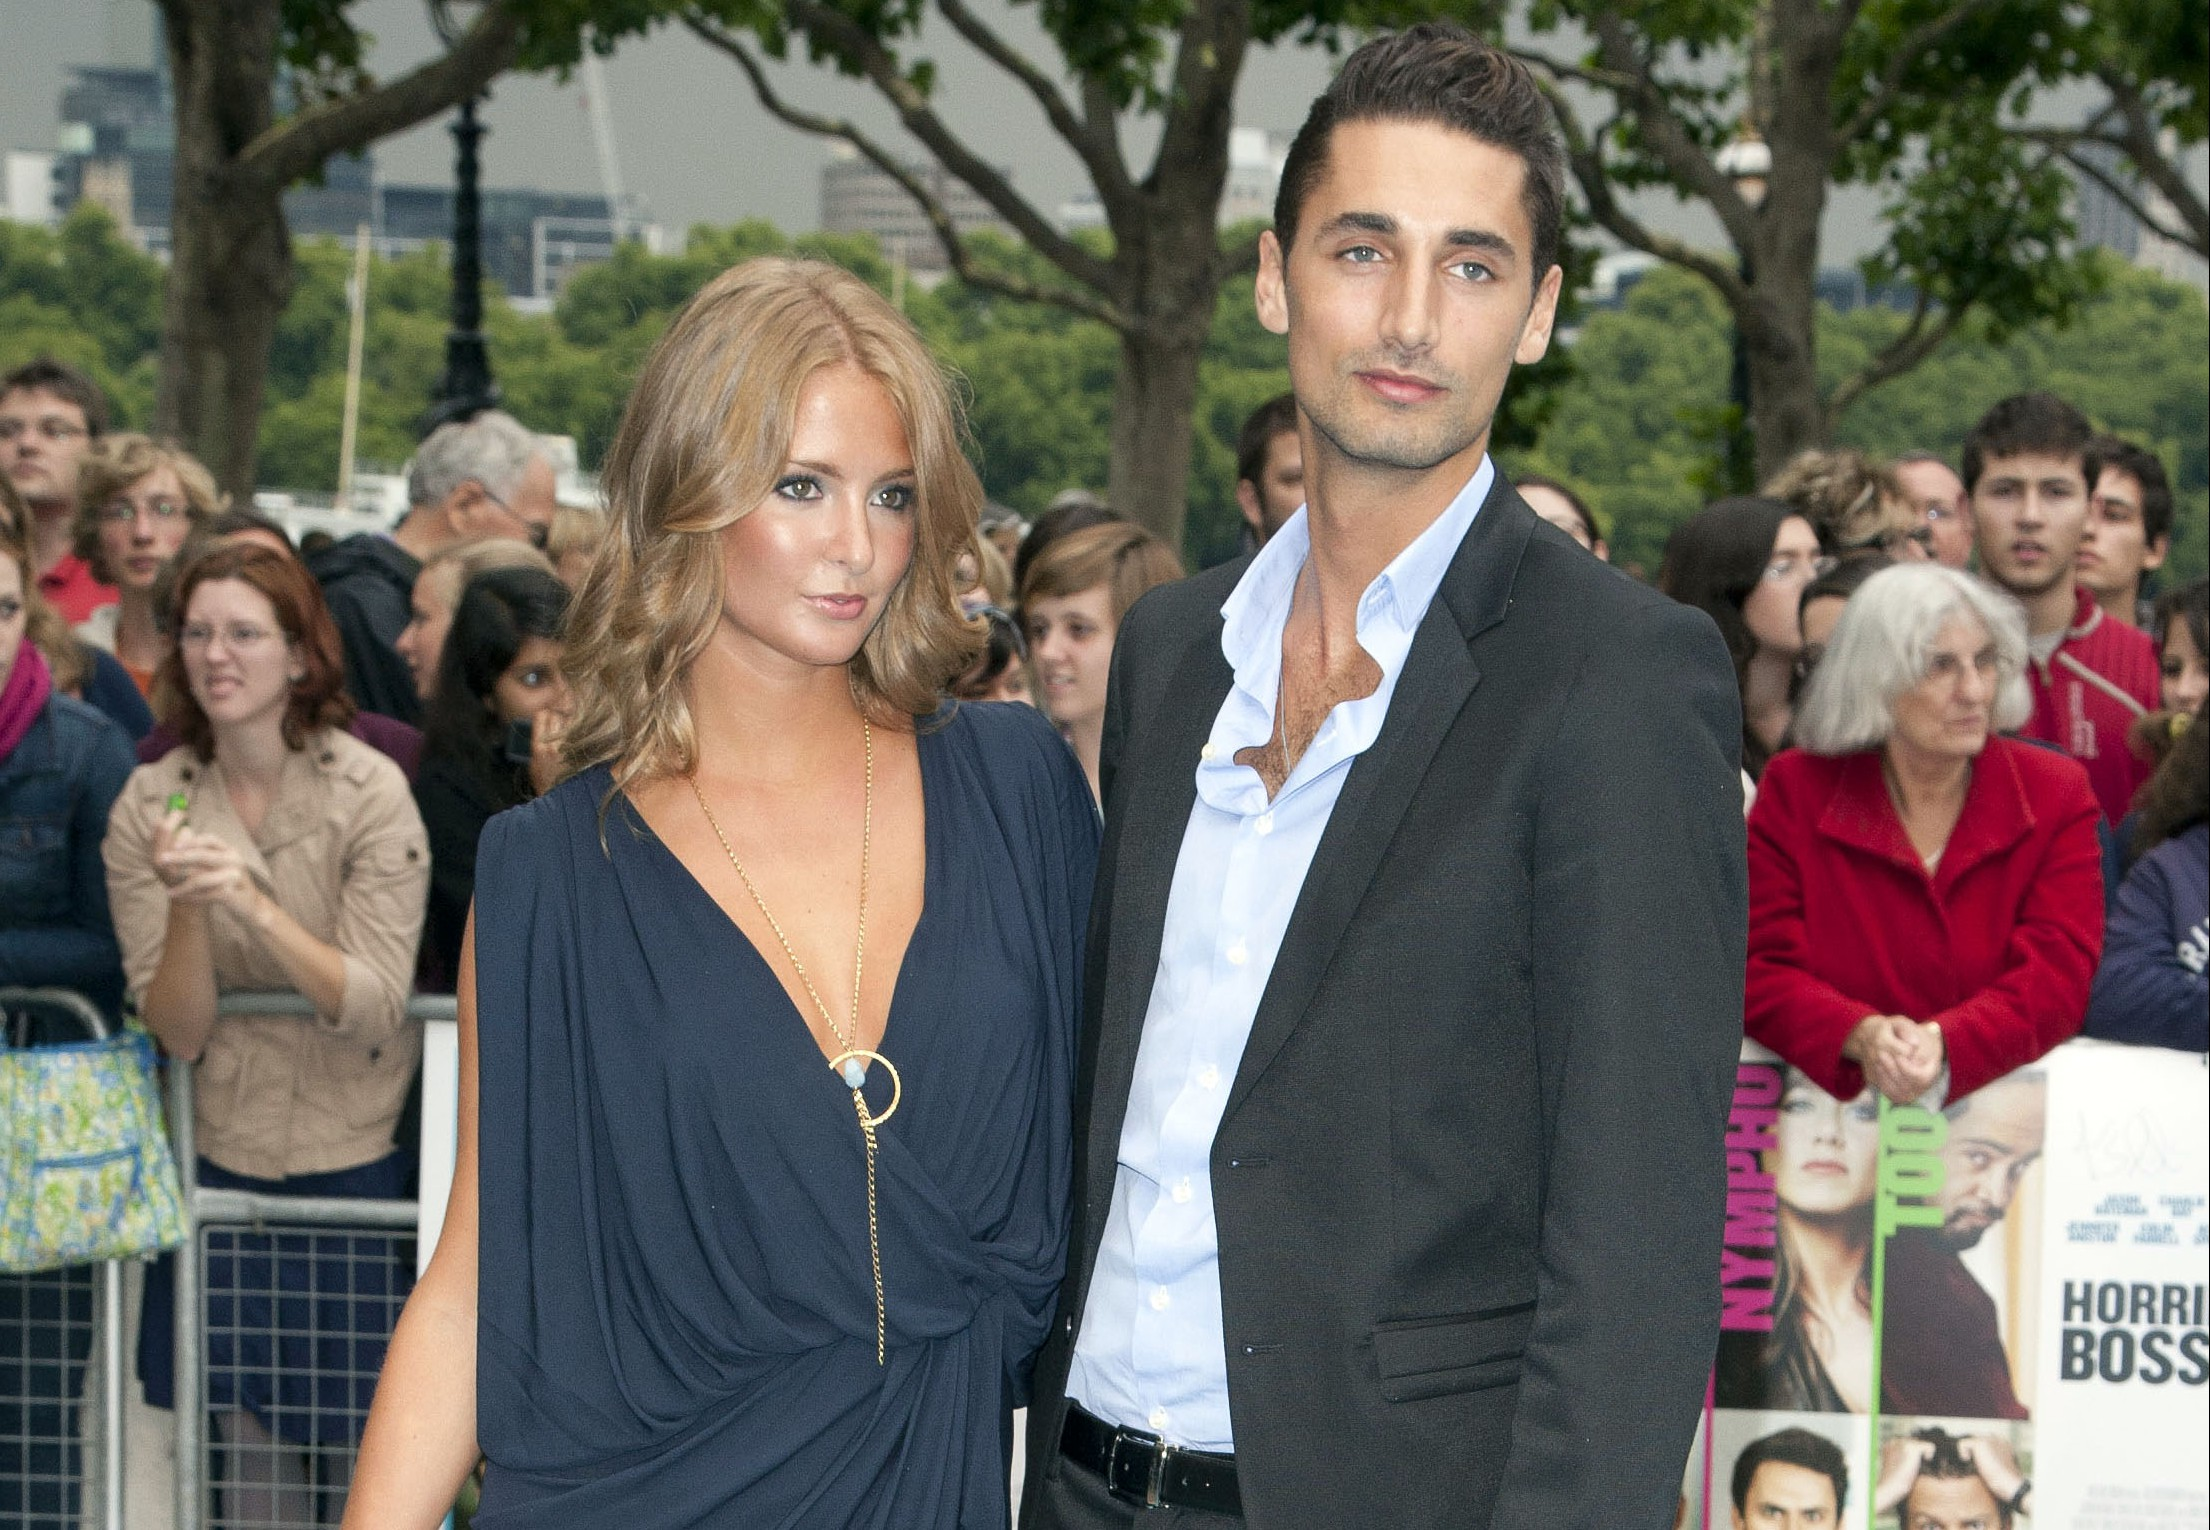 Looks like Millie Mackintosh is getting back with her old MIC flame Hugo